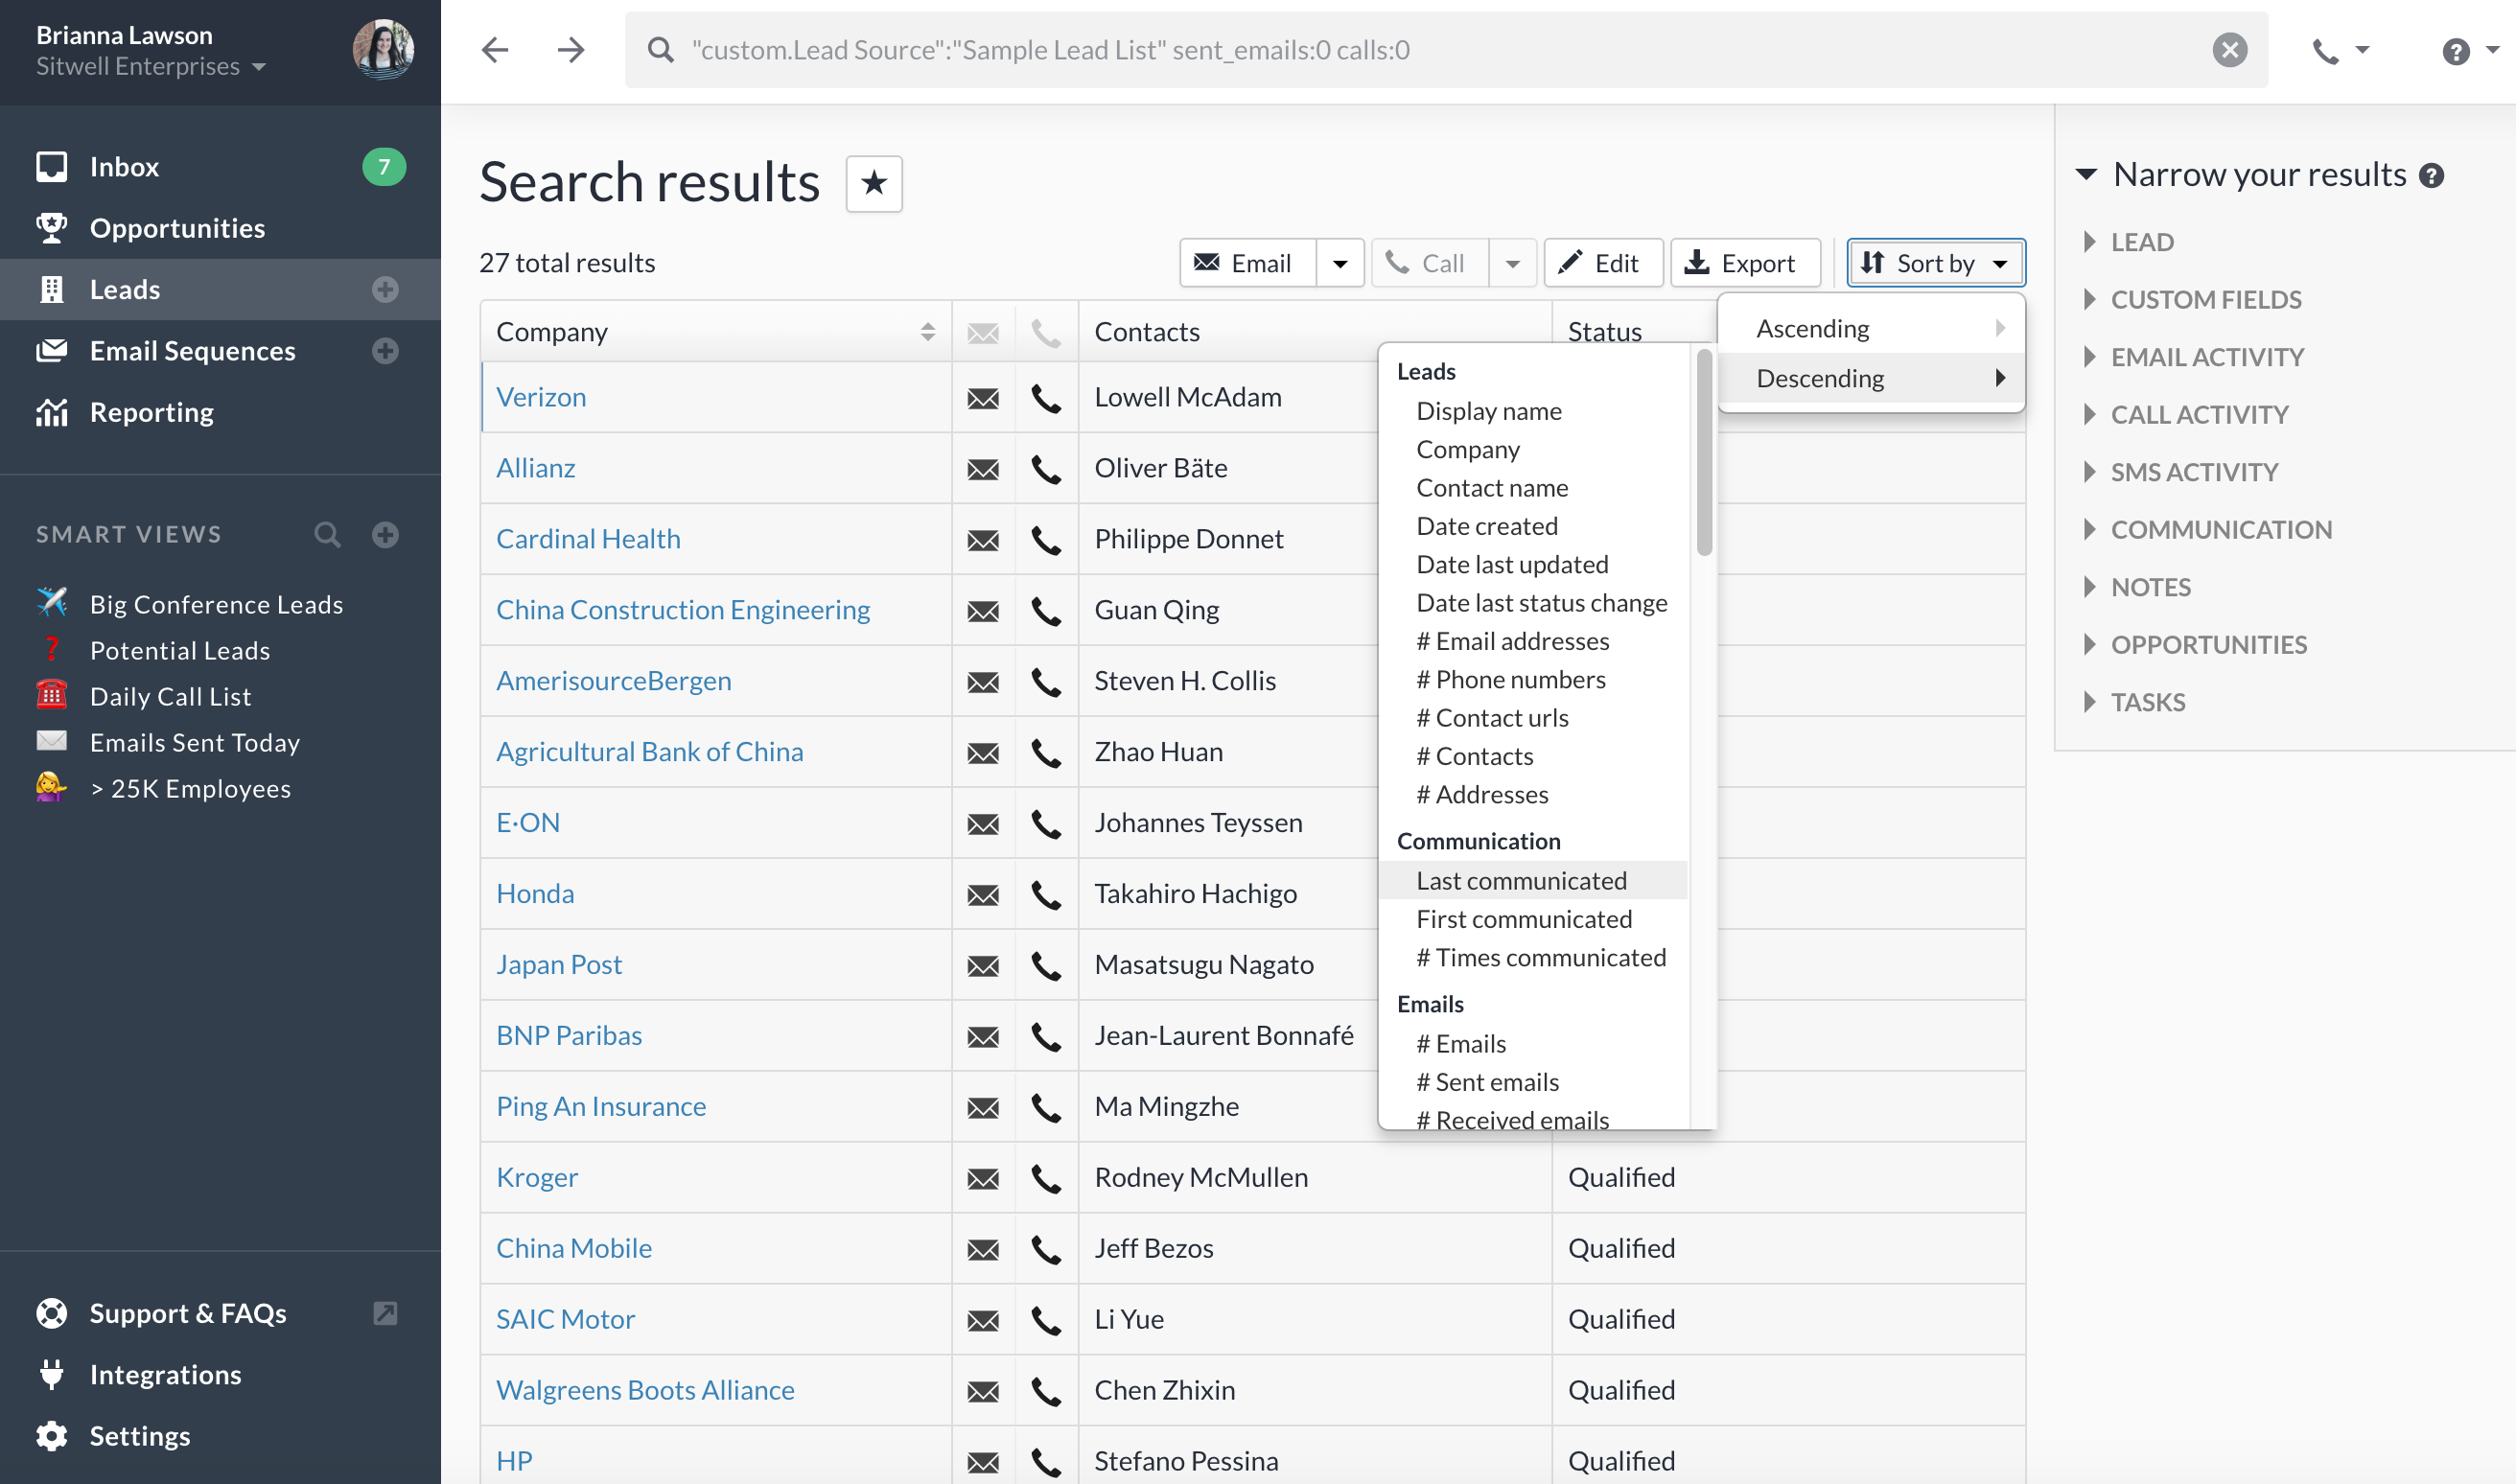 Close Software - Customize search